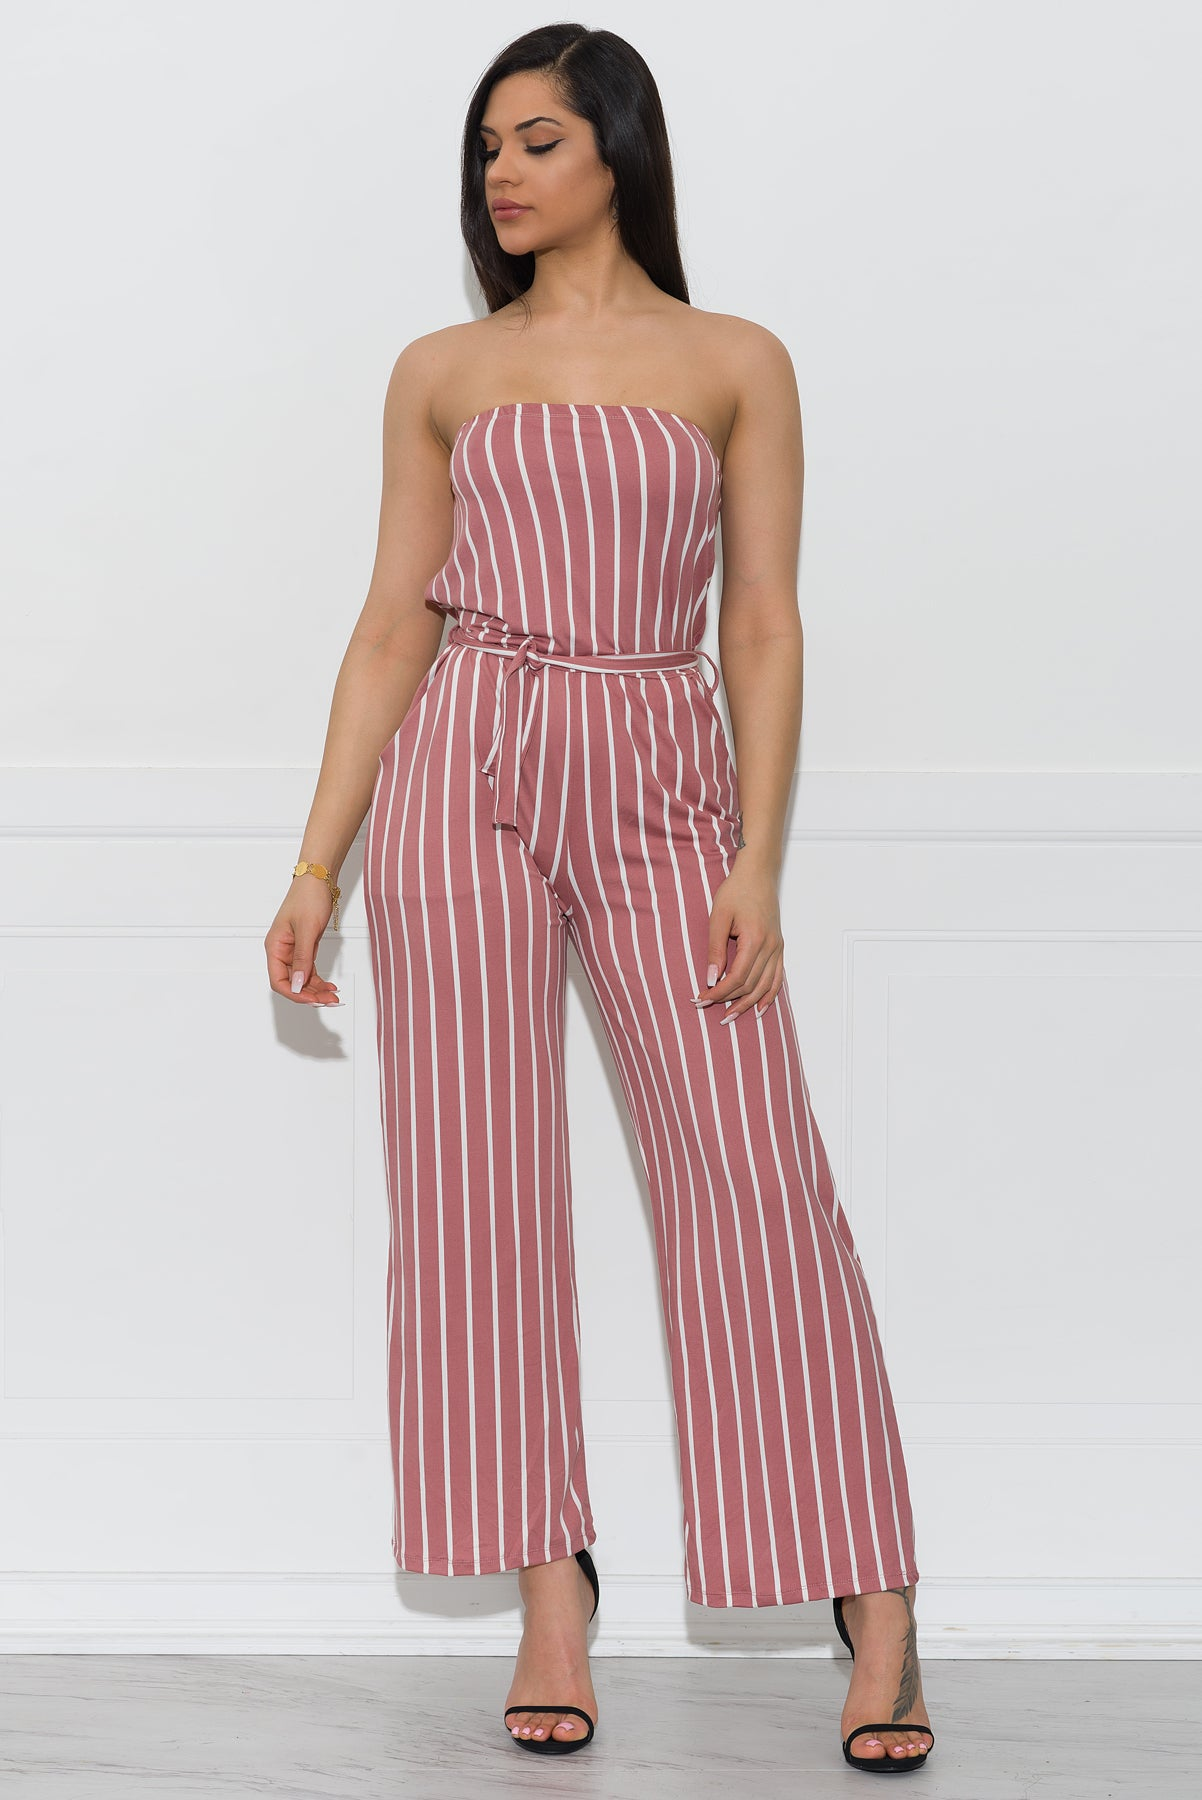 29110620fd75 Tiffany Striped Jumpsuit - Pink – Fashion Effect Store